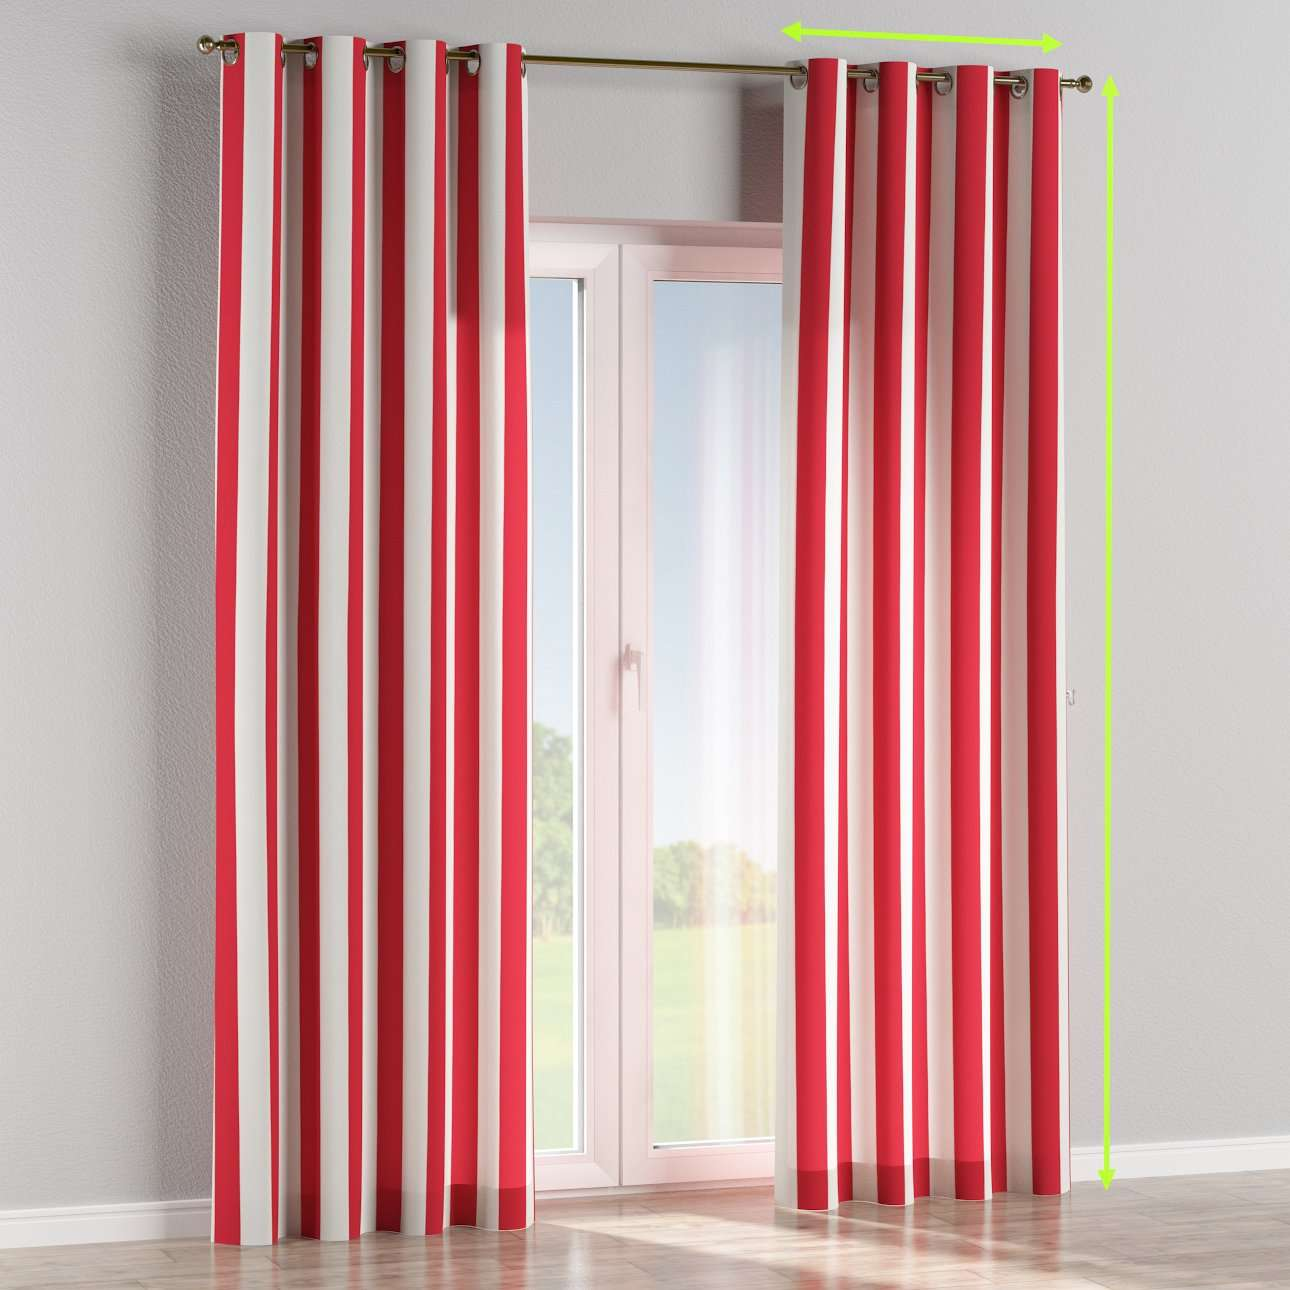 Eyelet lined curtains in collection Comic Book & Geo Prints, fabric: 137-54